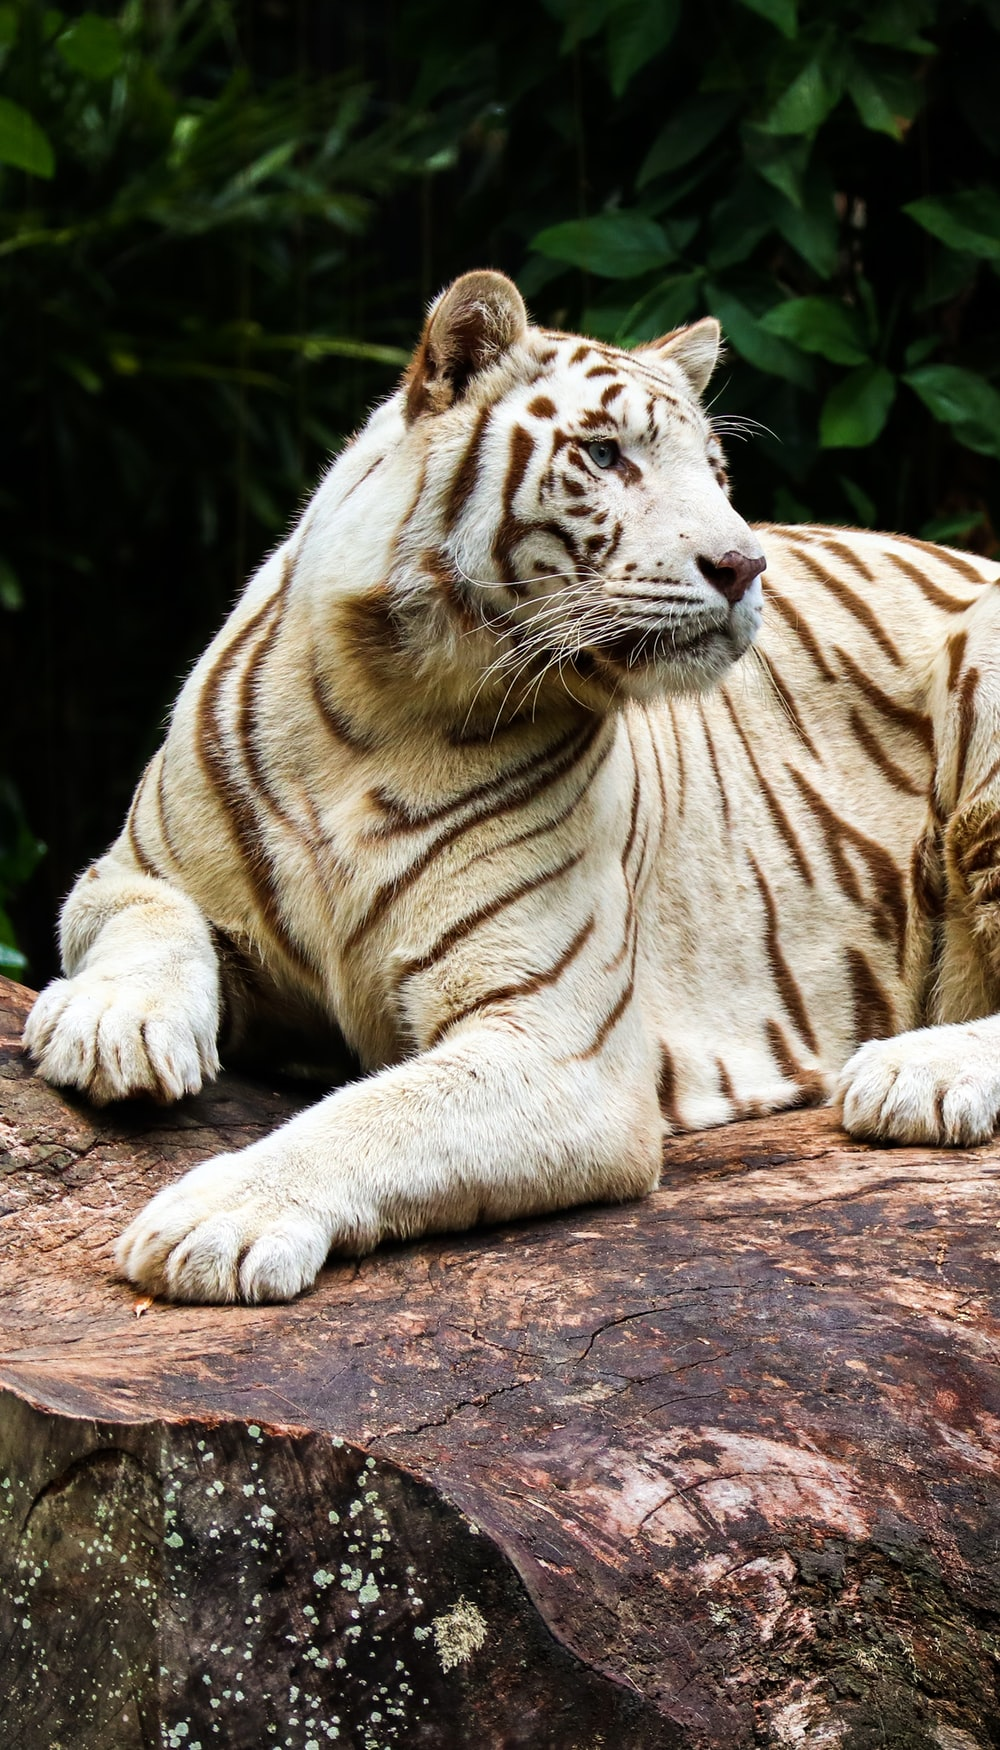 white and brown tiger lying on brown soil during daytime